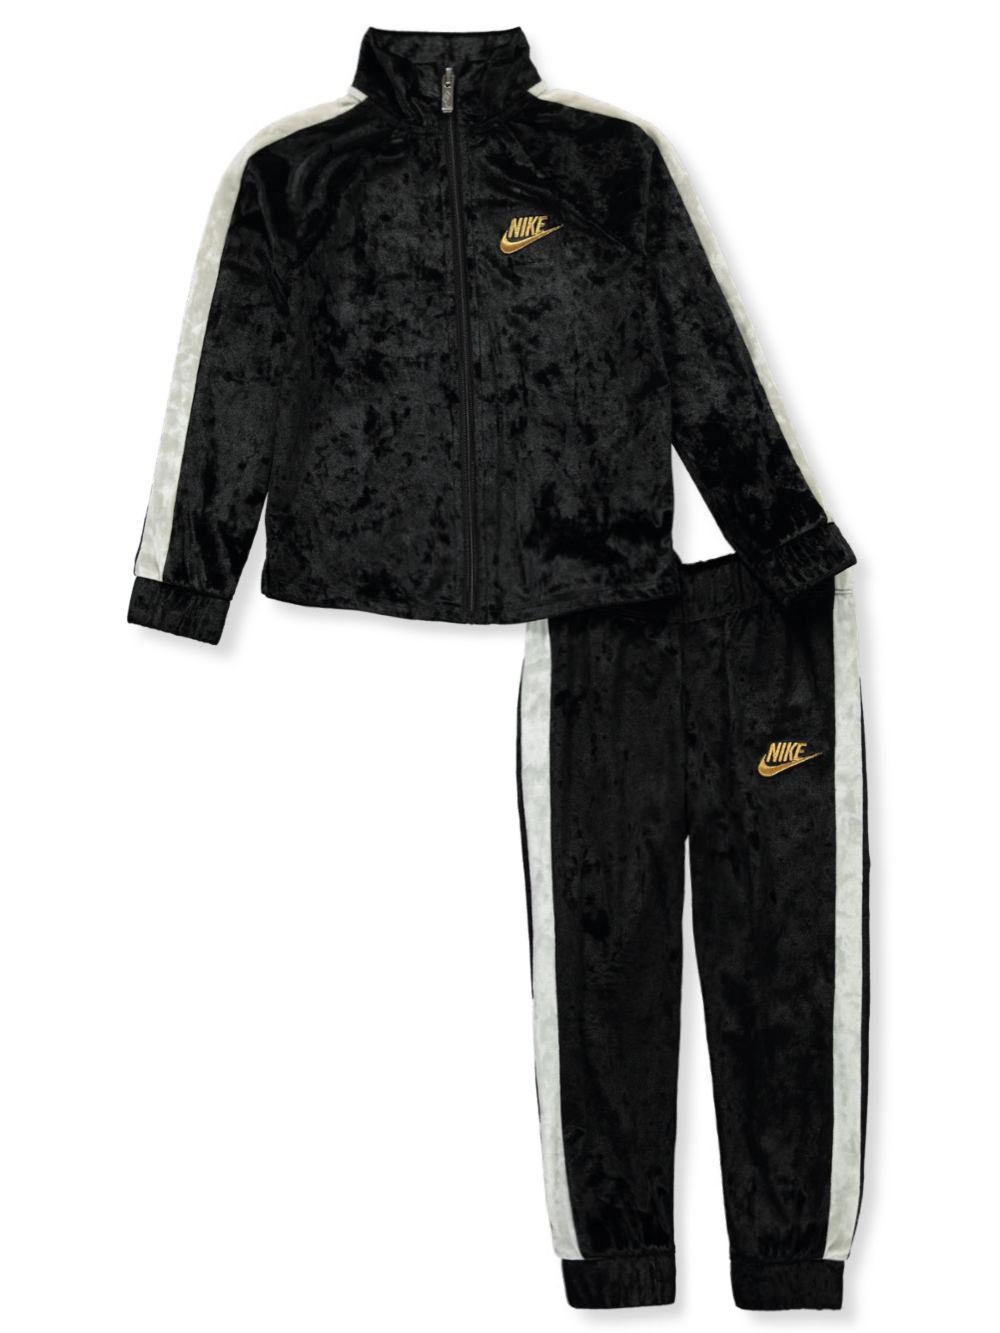 Girls' Velour 2-Piece Tracksuit Outfit